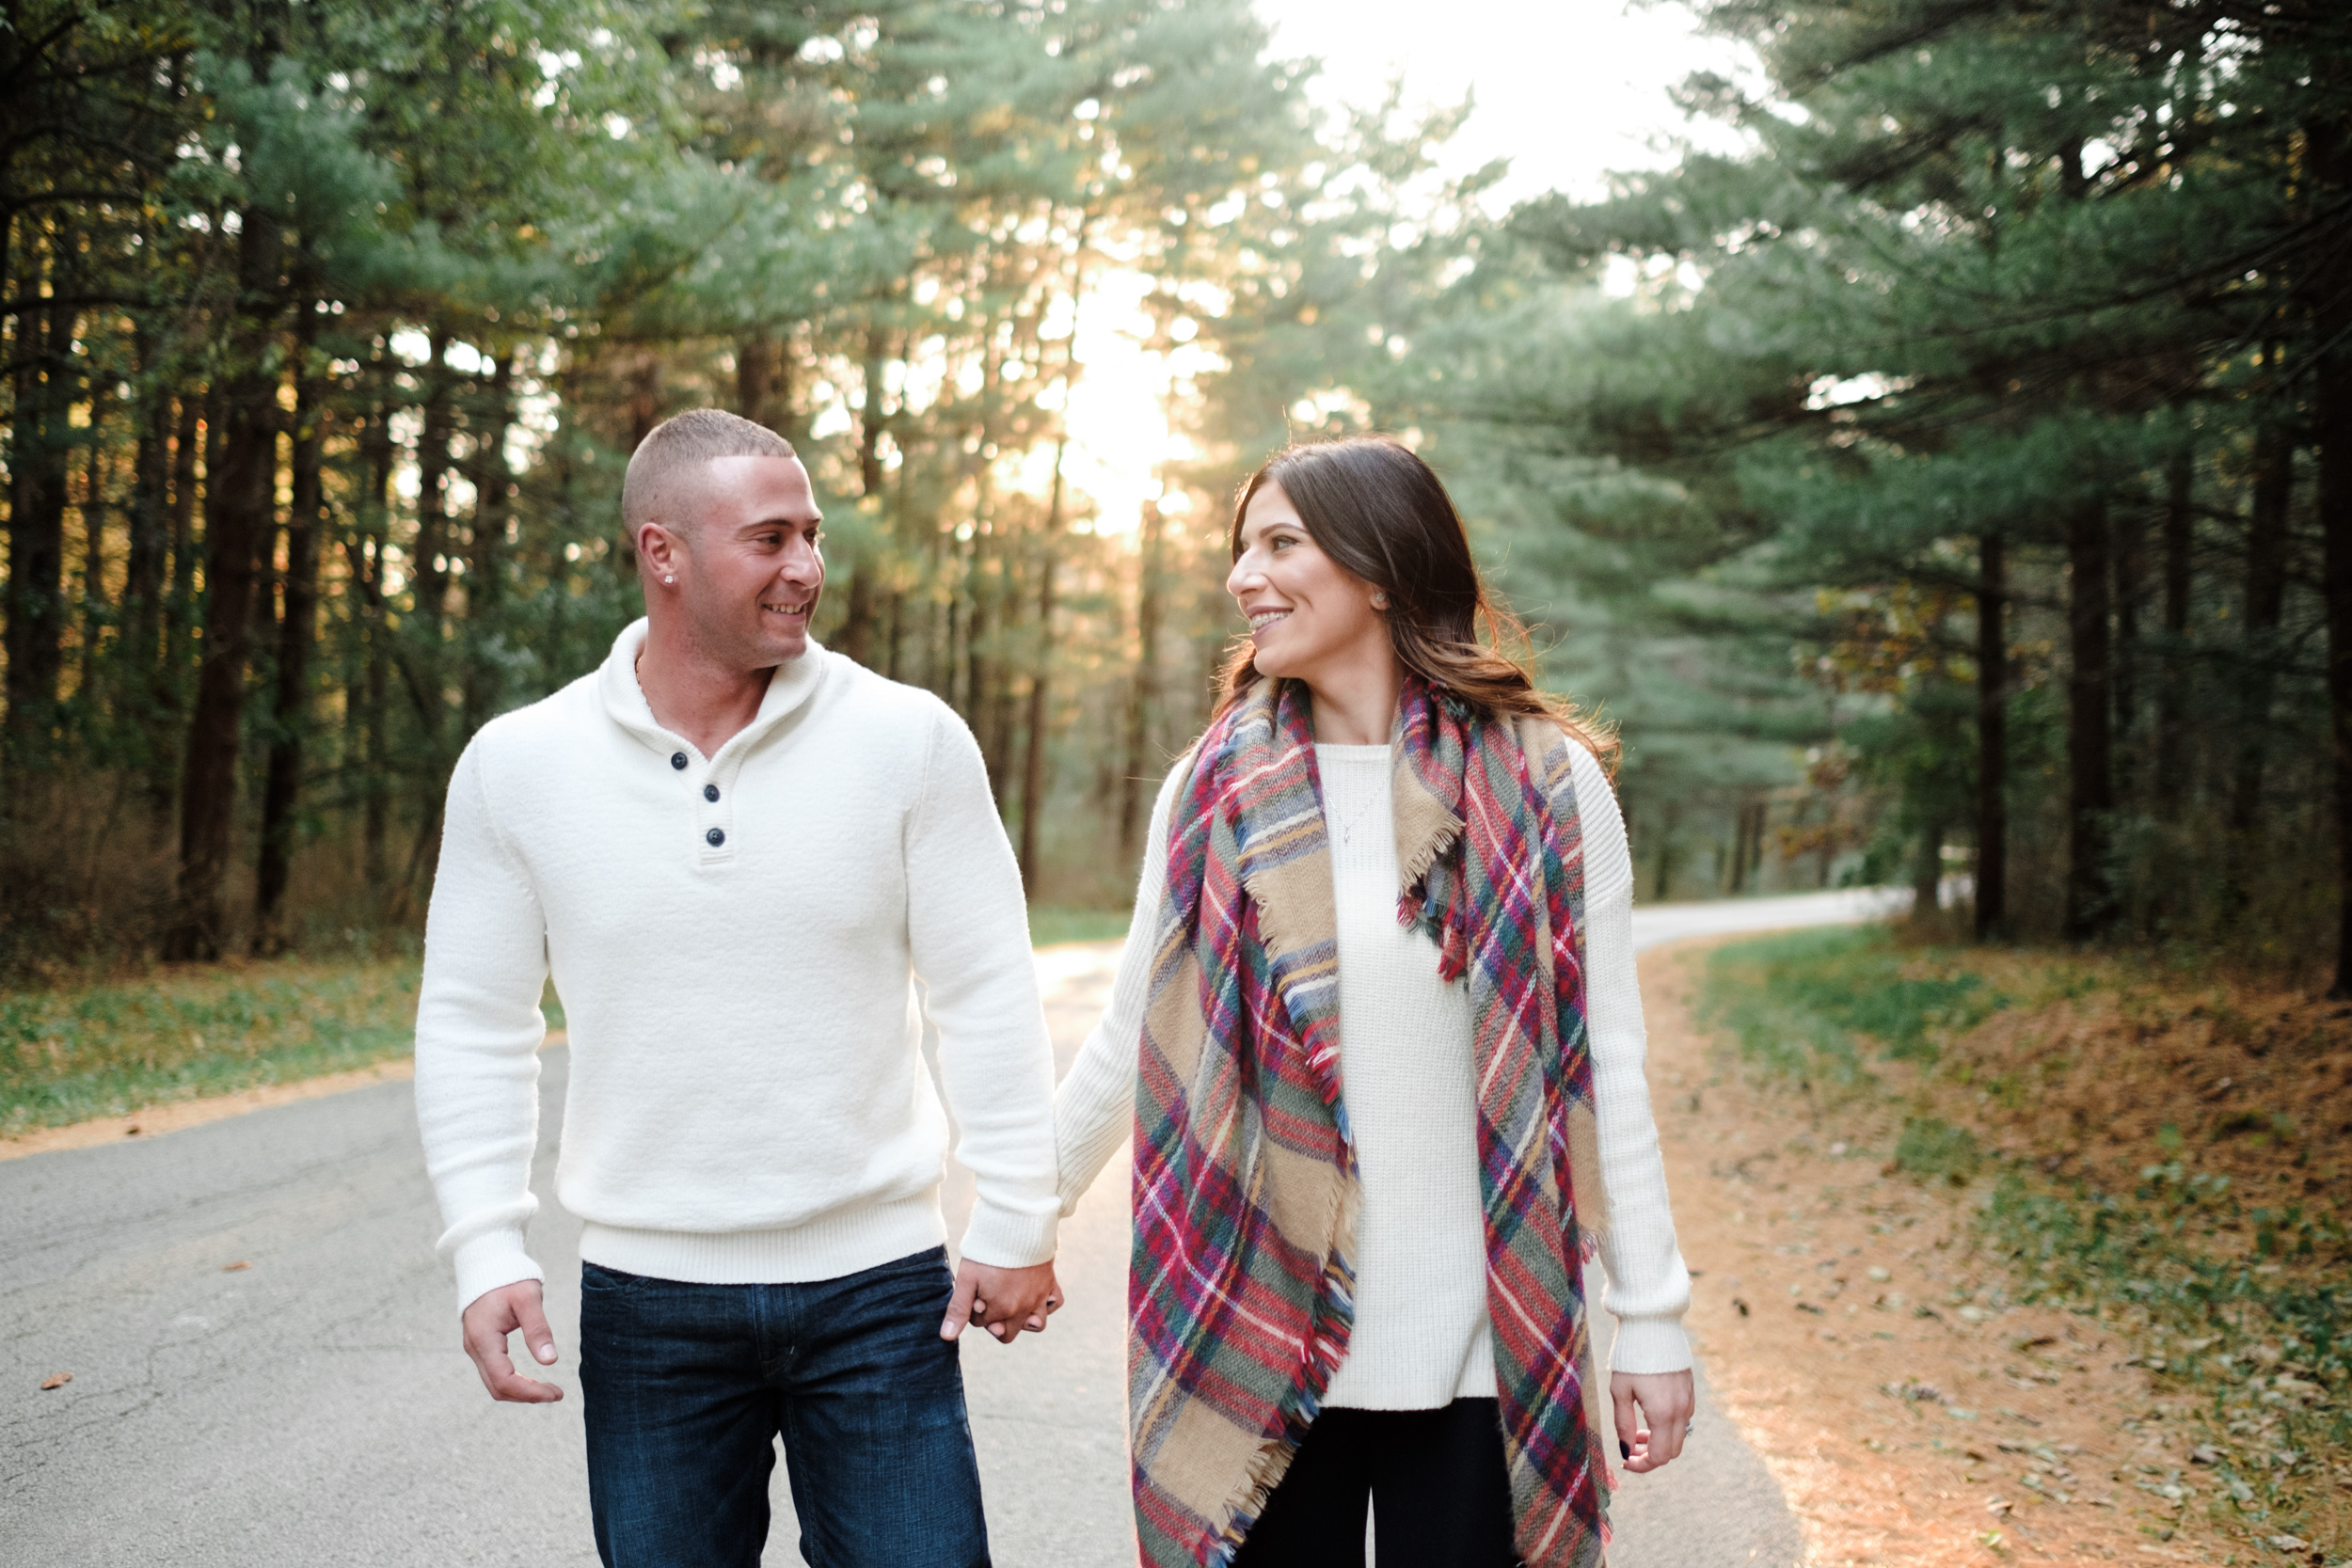 fun, genuine engagement photography in Machesney Park, iL